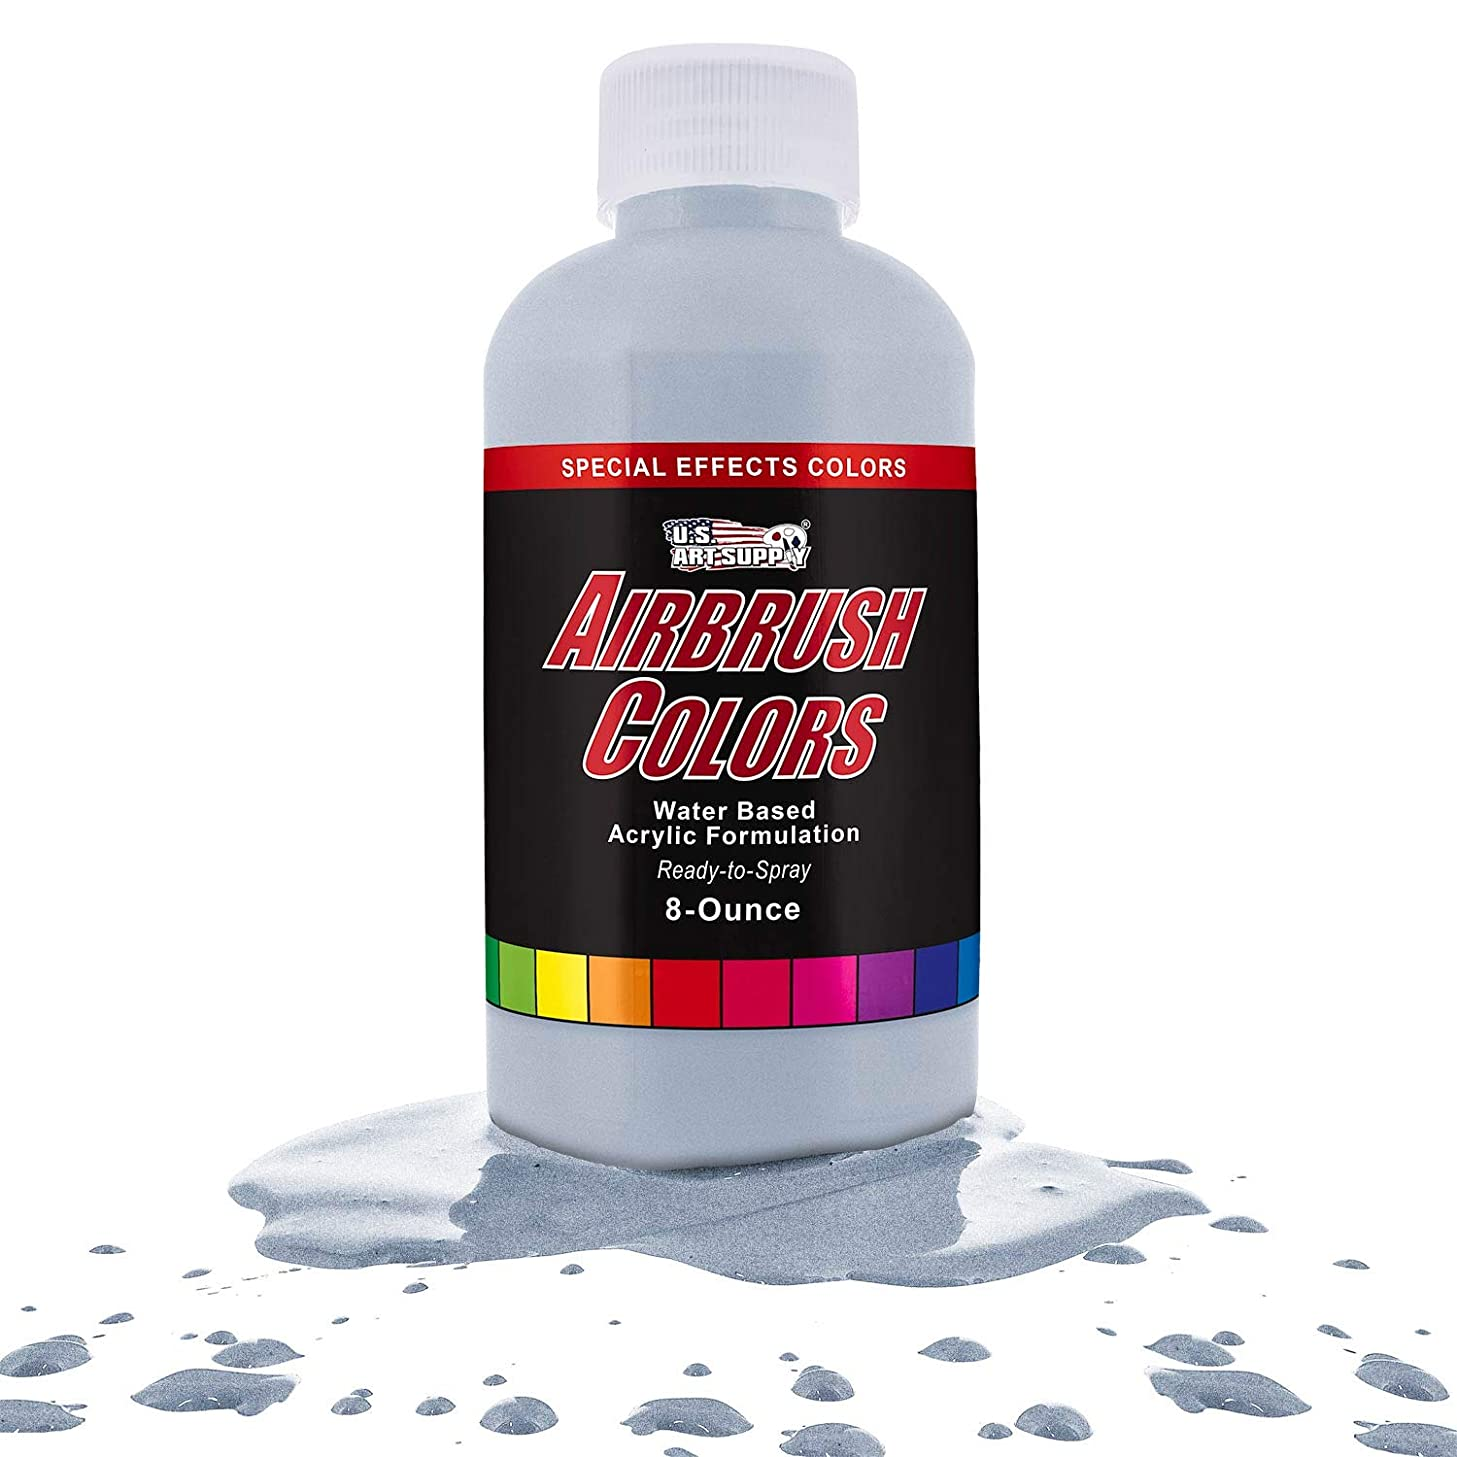 US Art Supply Silver Pearl Pearlized Special Effects Acrylic Airbrush Paint 8 oz.